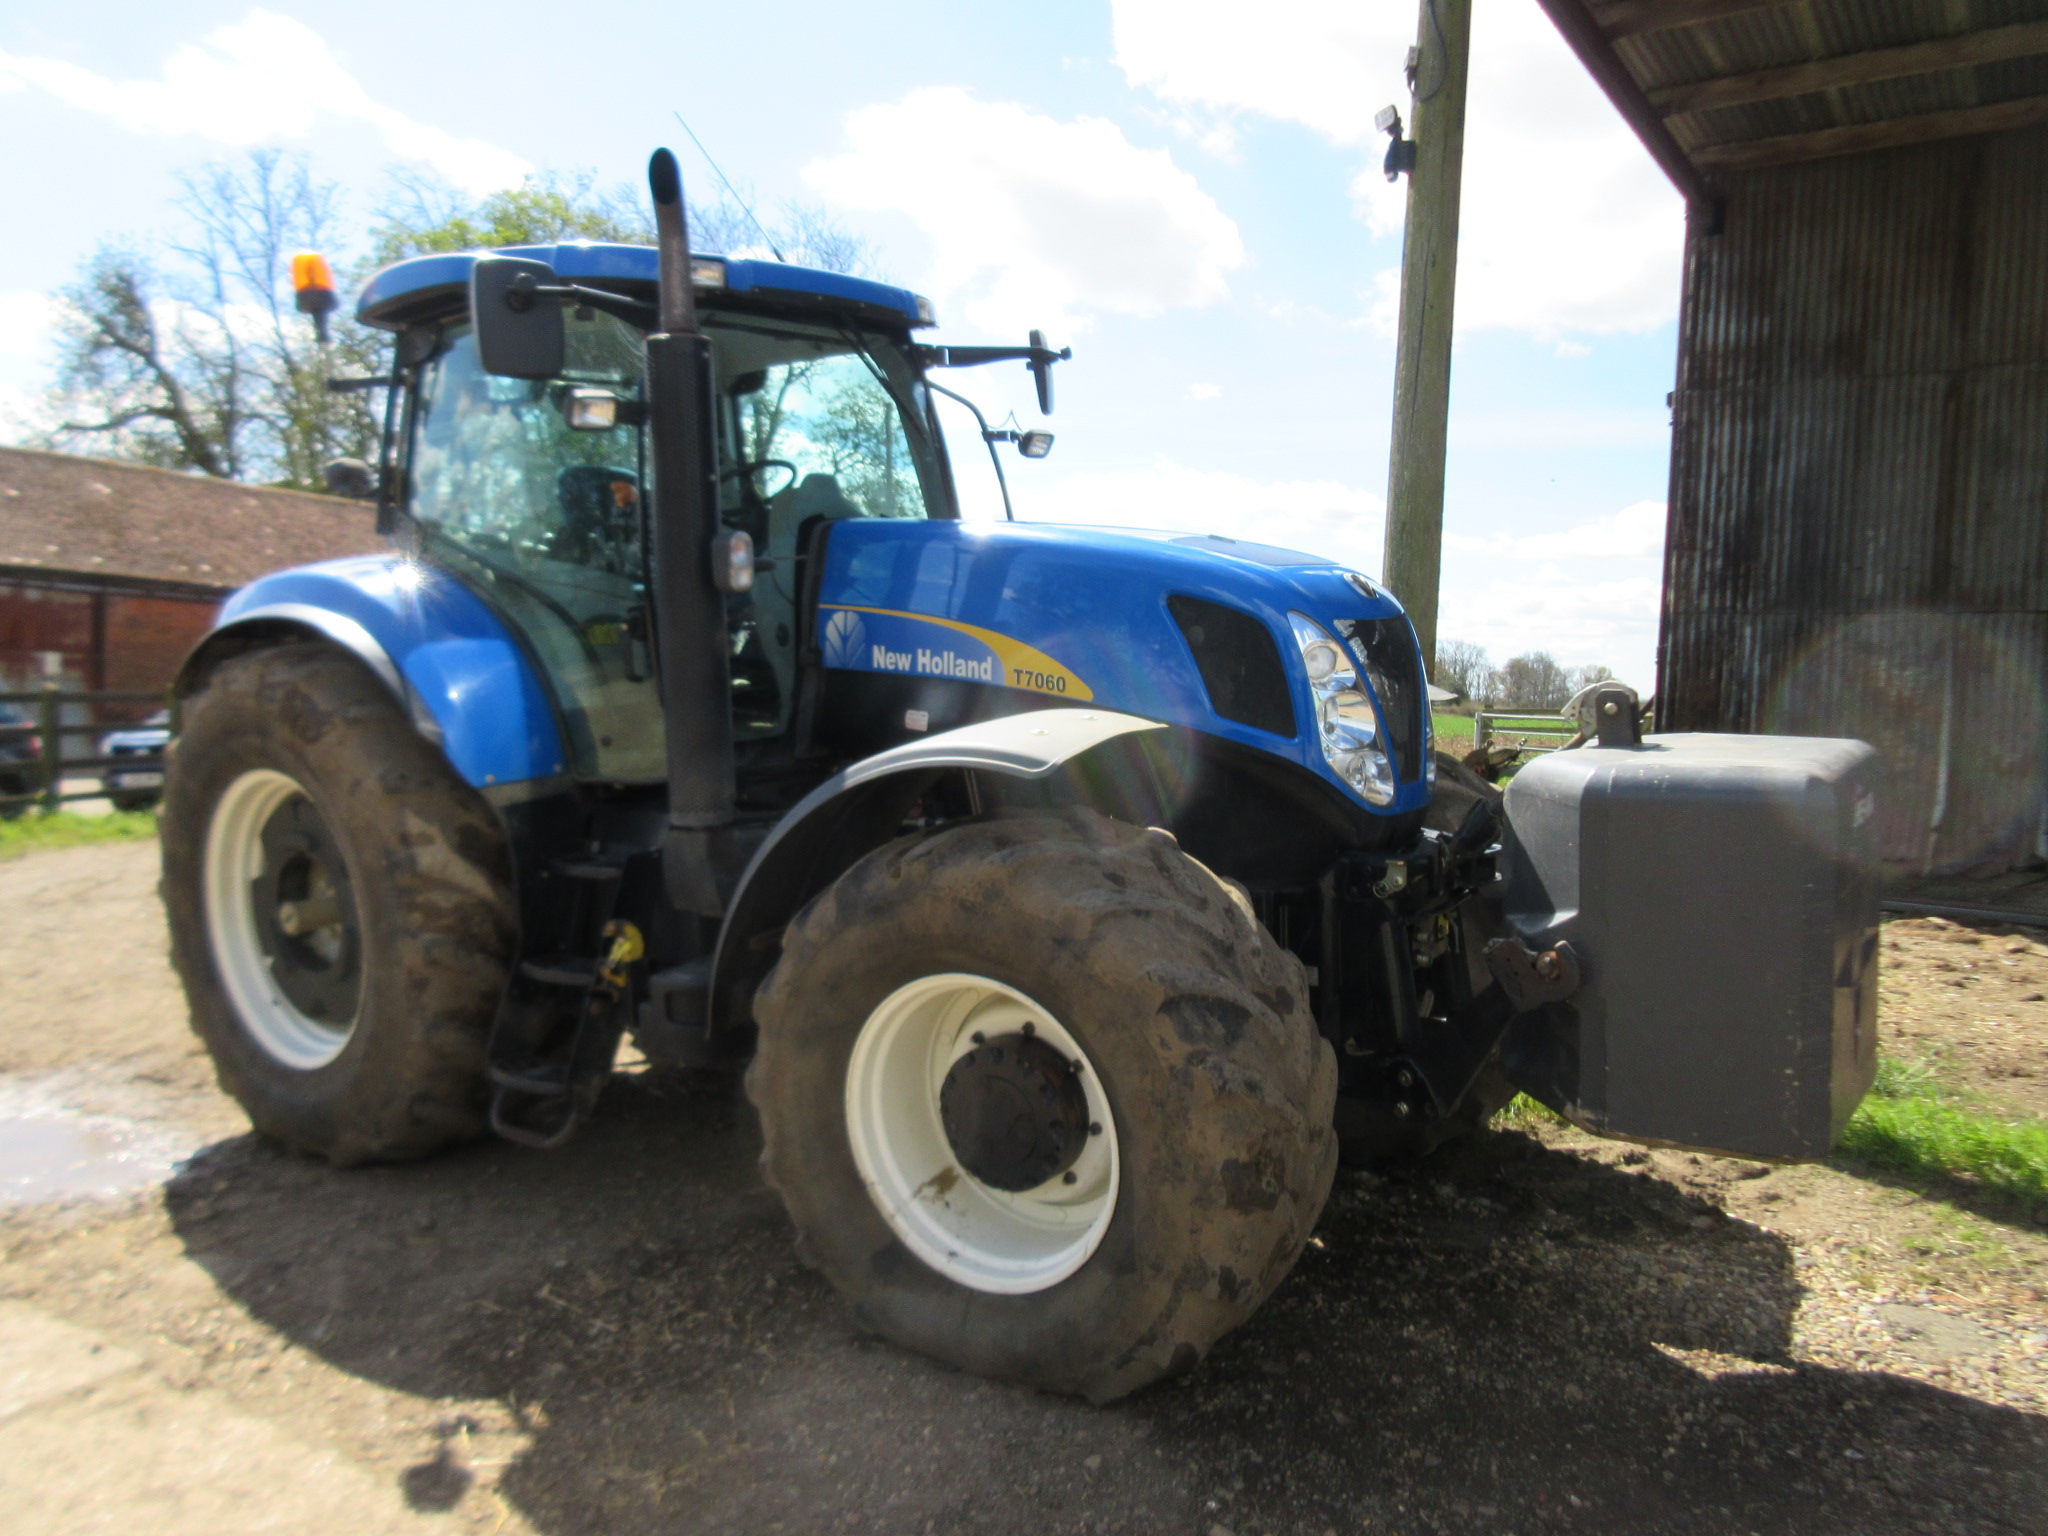 New Holland Tractor Wheel Weights : New holland t kph wd tractor fitted with front